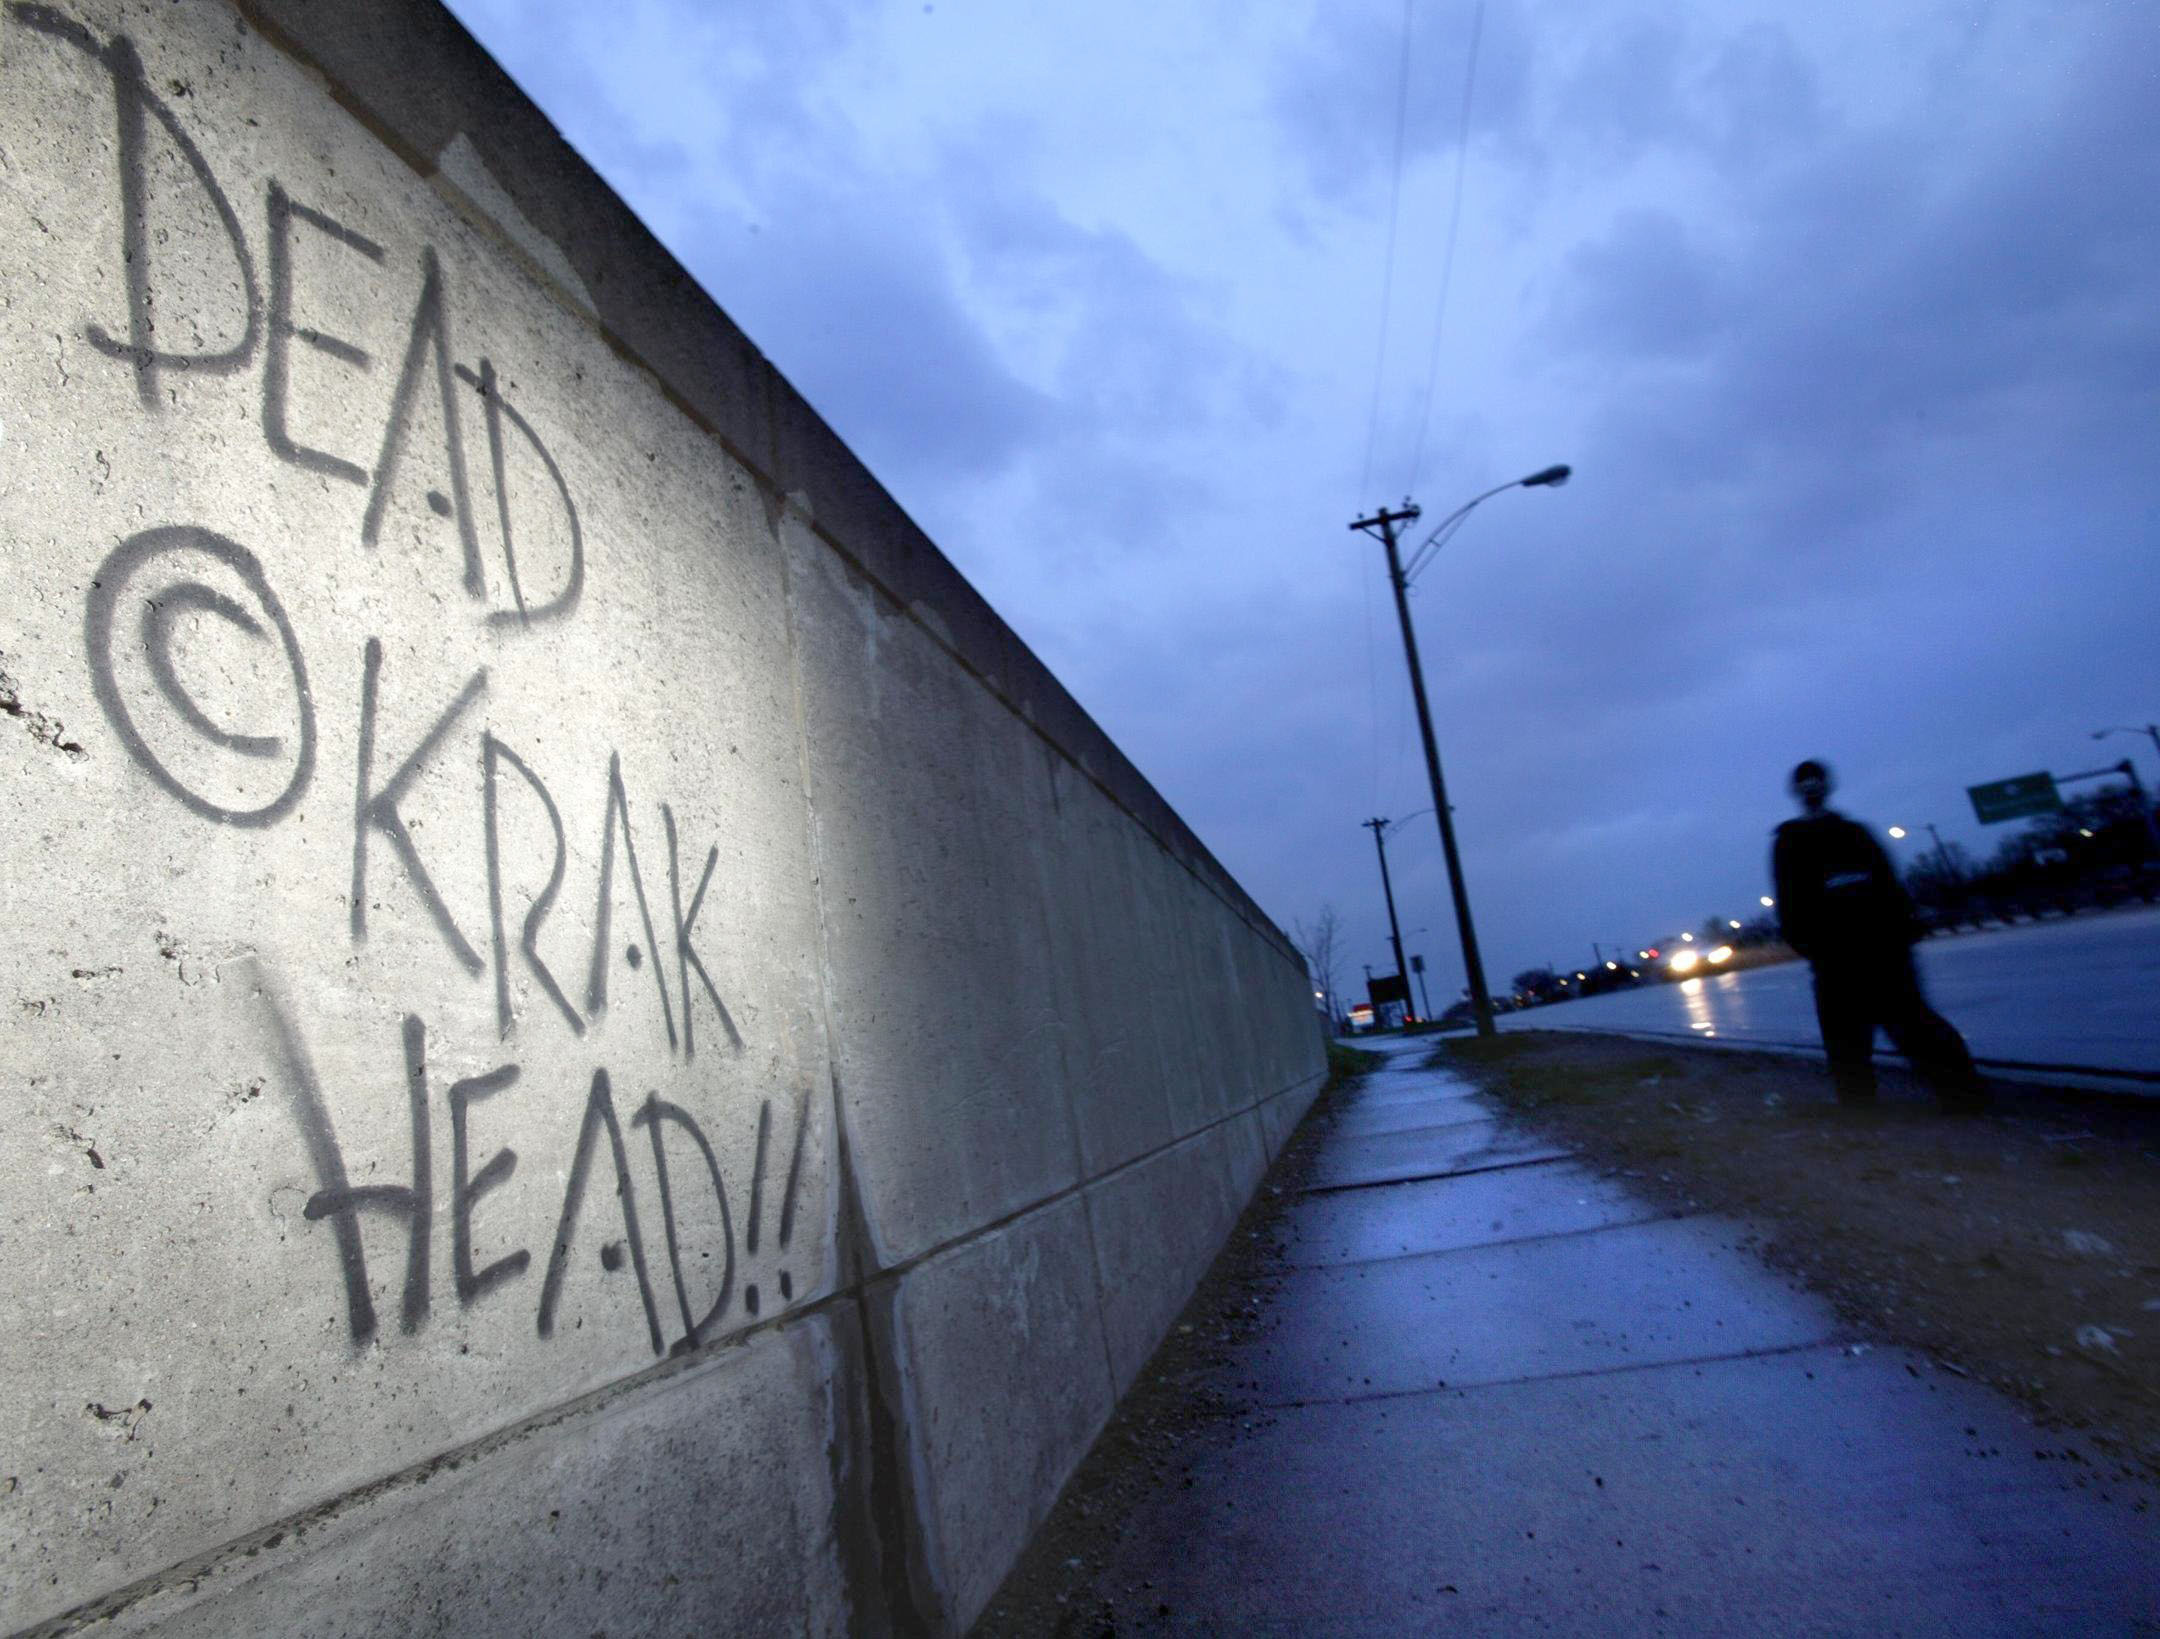 A graffiti epitaph to crack users on the wall of an underpass along 8 Mile Road, near the Michigan State Fair Grounds.  Courtesy of the Detroit Free Press.